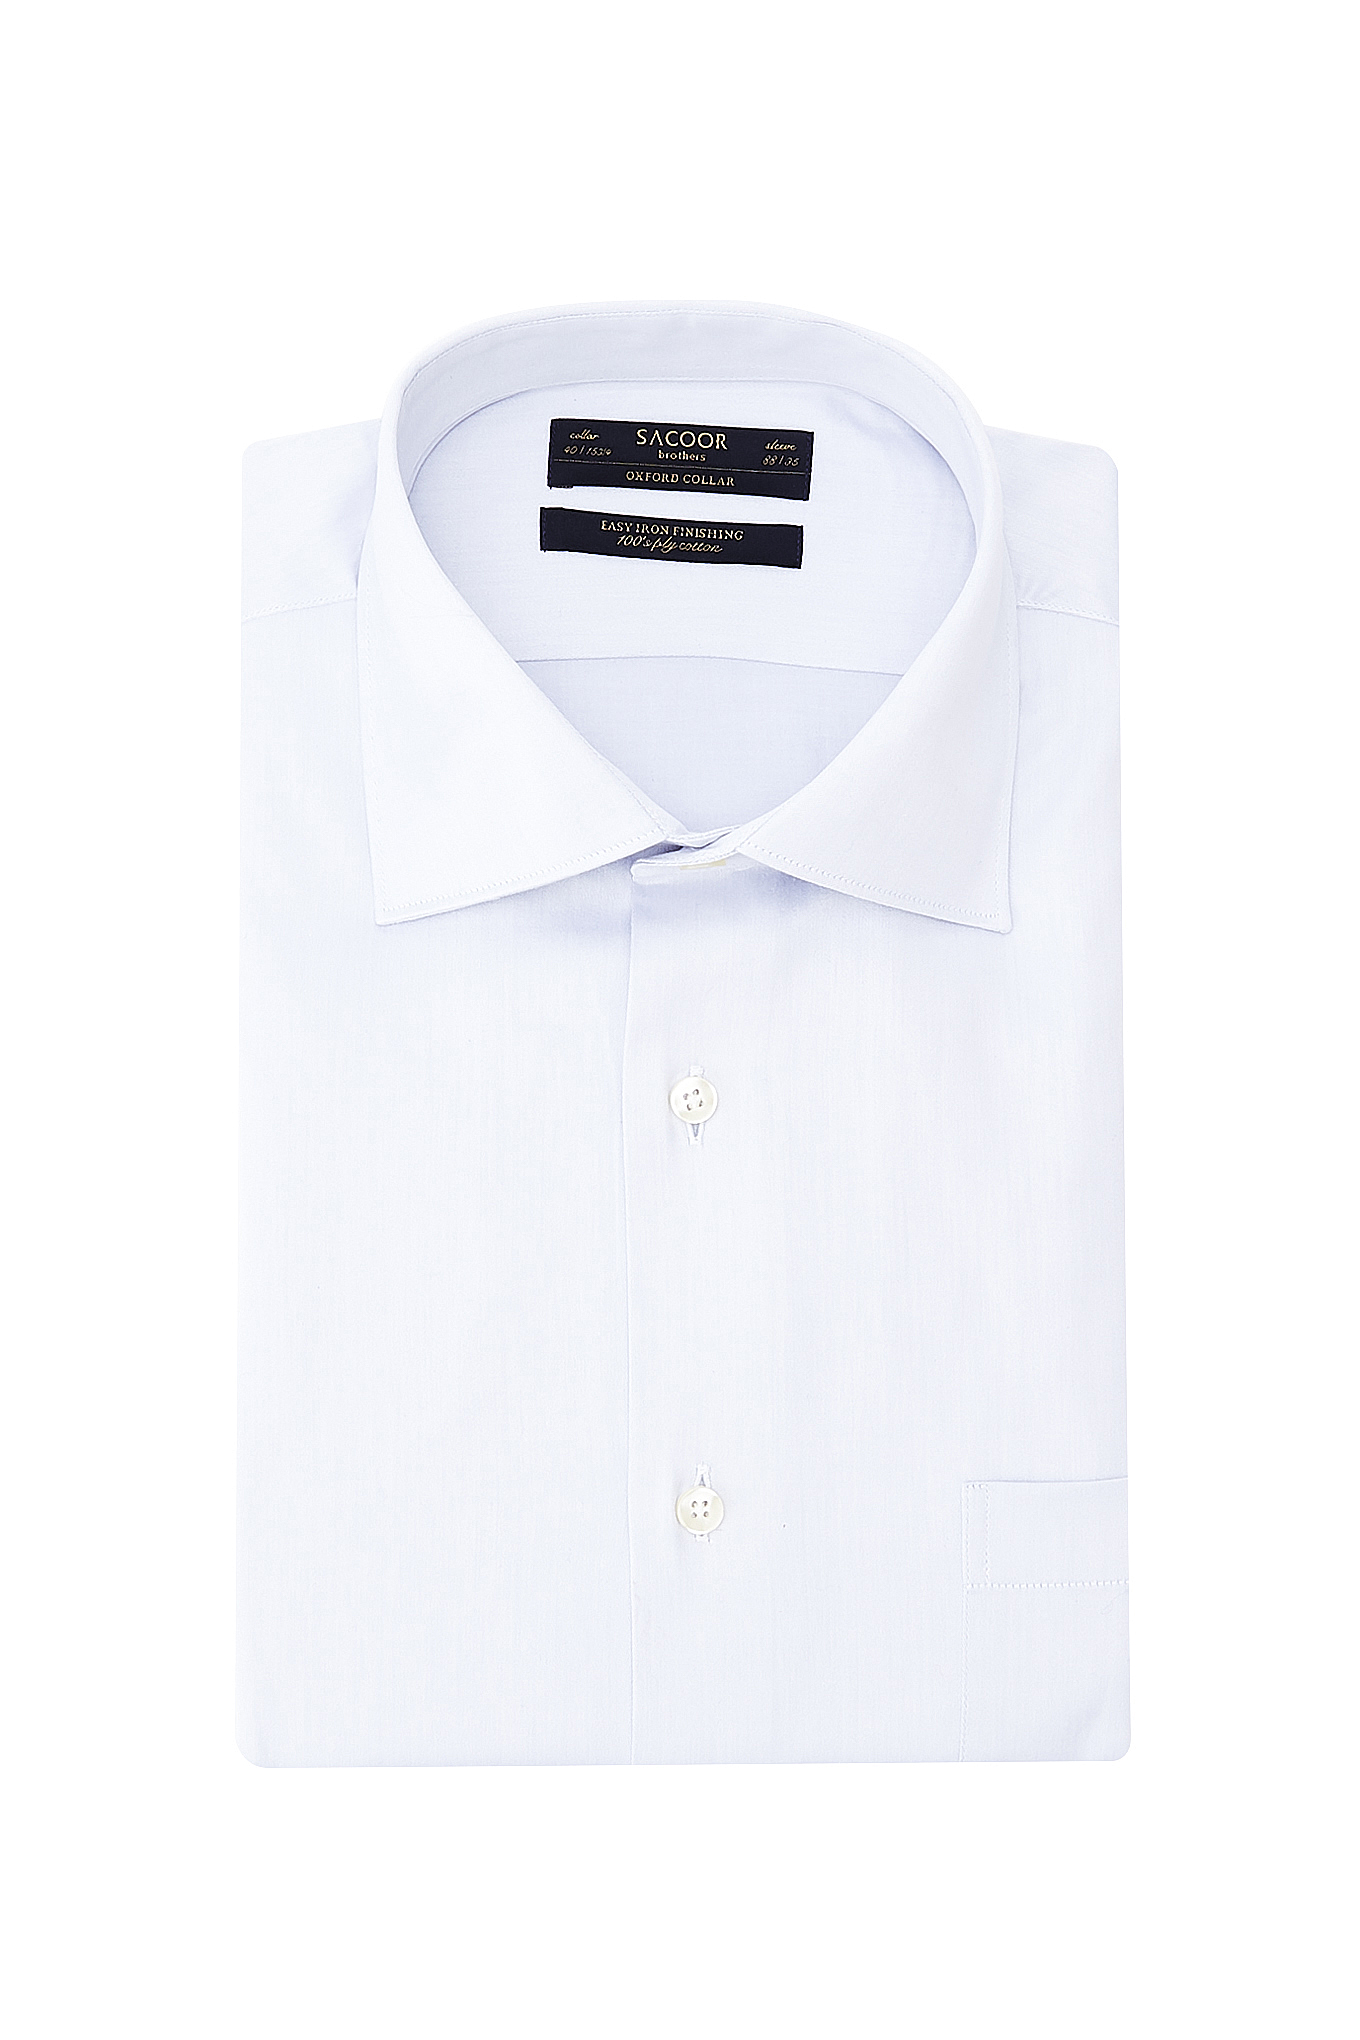 e2c98f84a26 Men Shirts | Spring Summer Collection 2019 | Sacoor Brothers